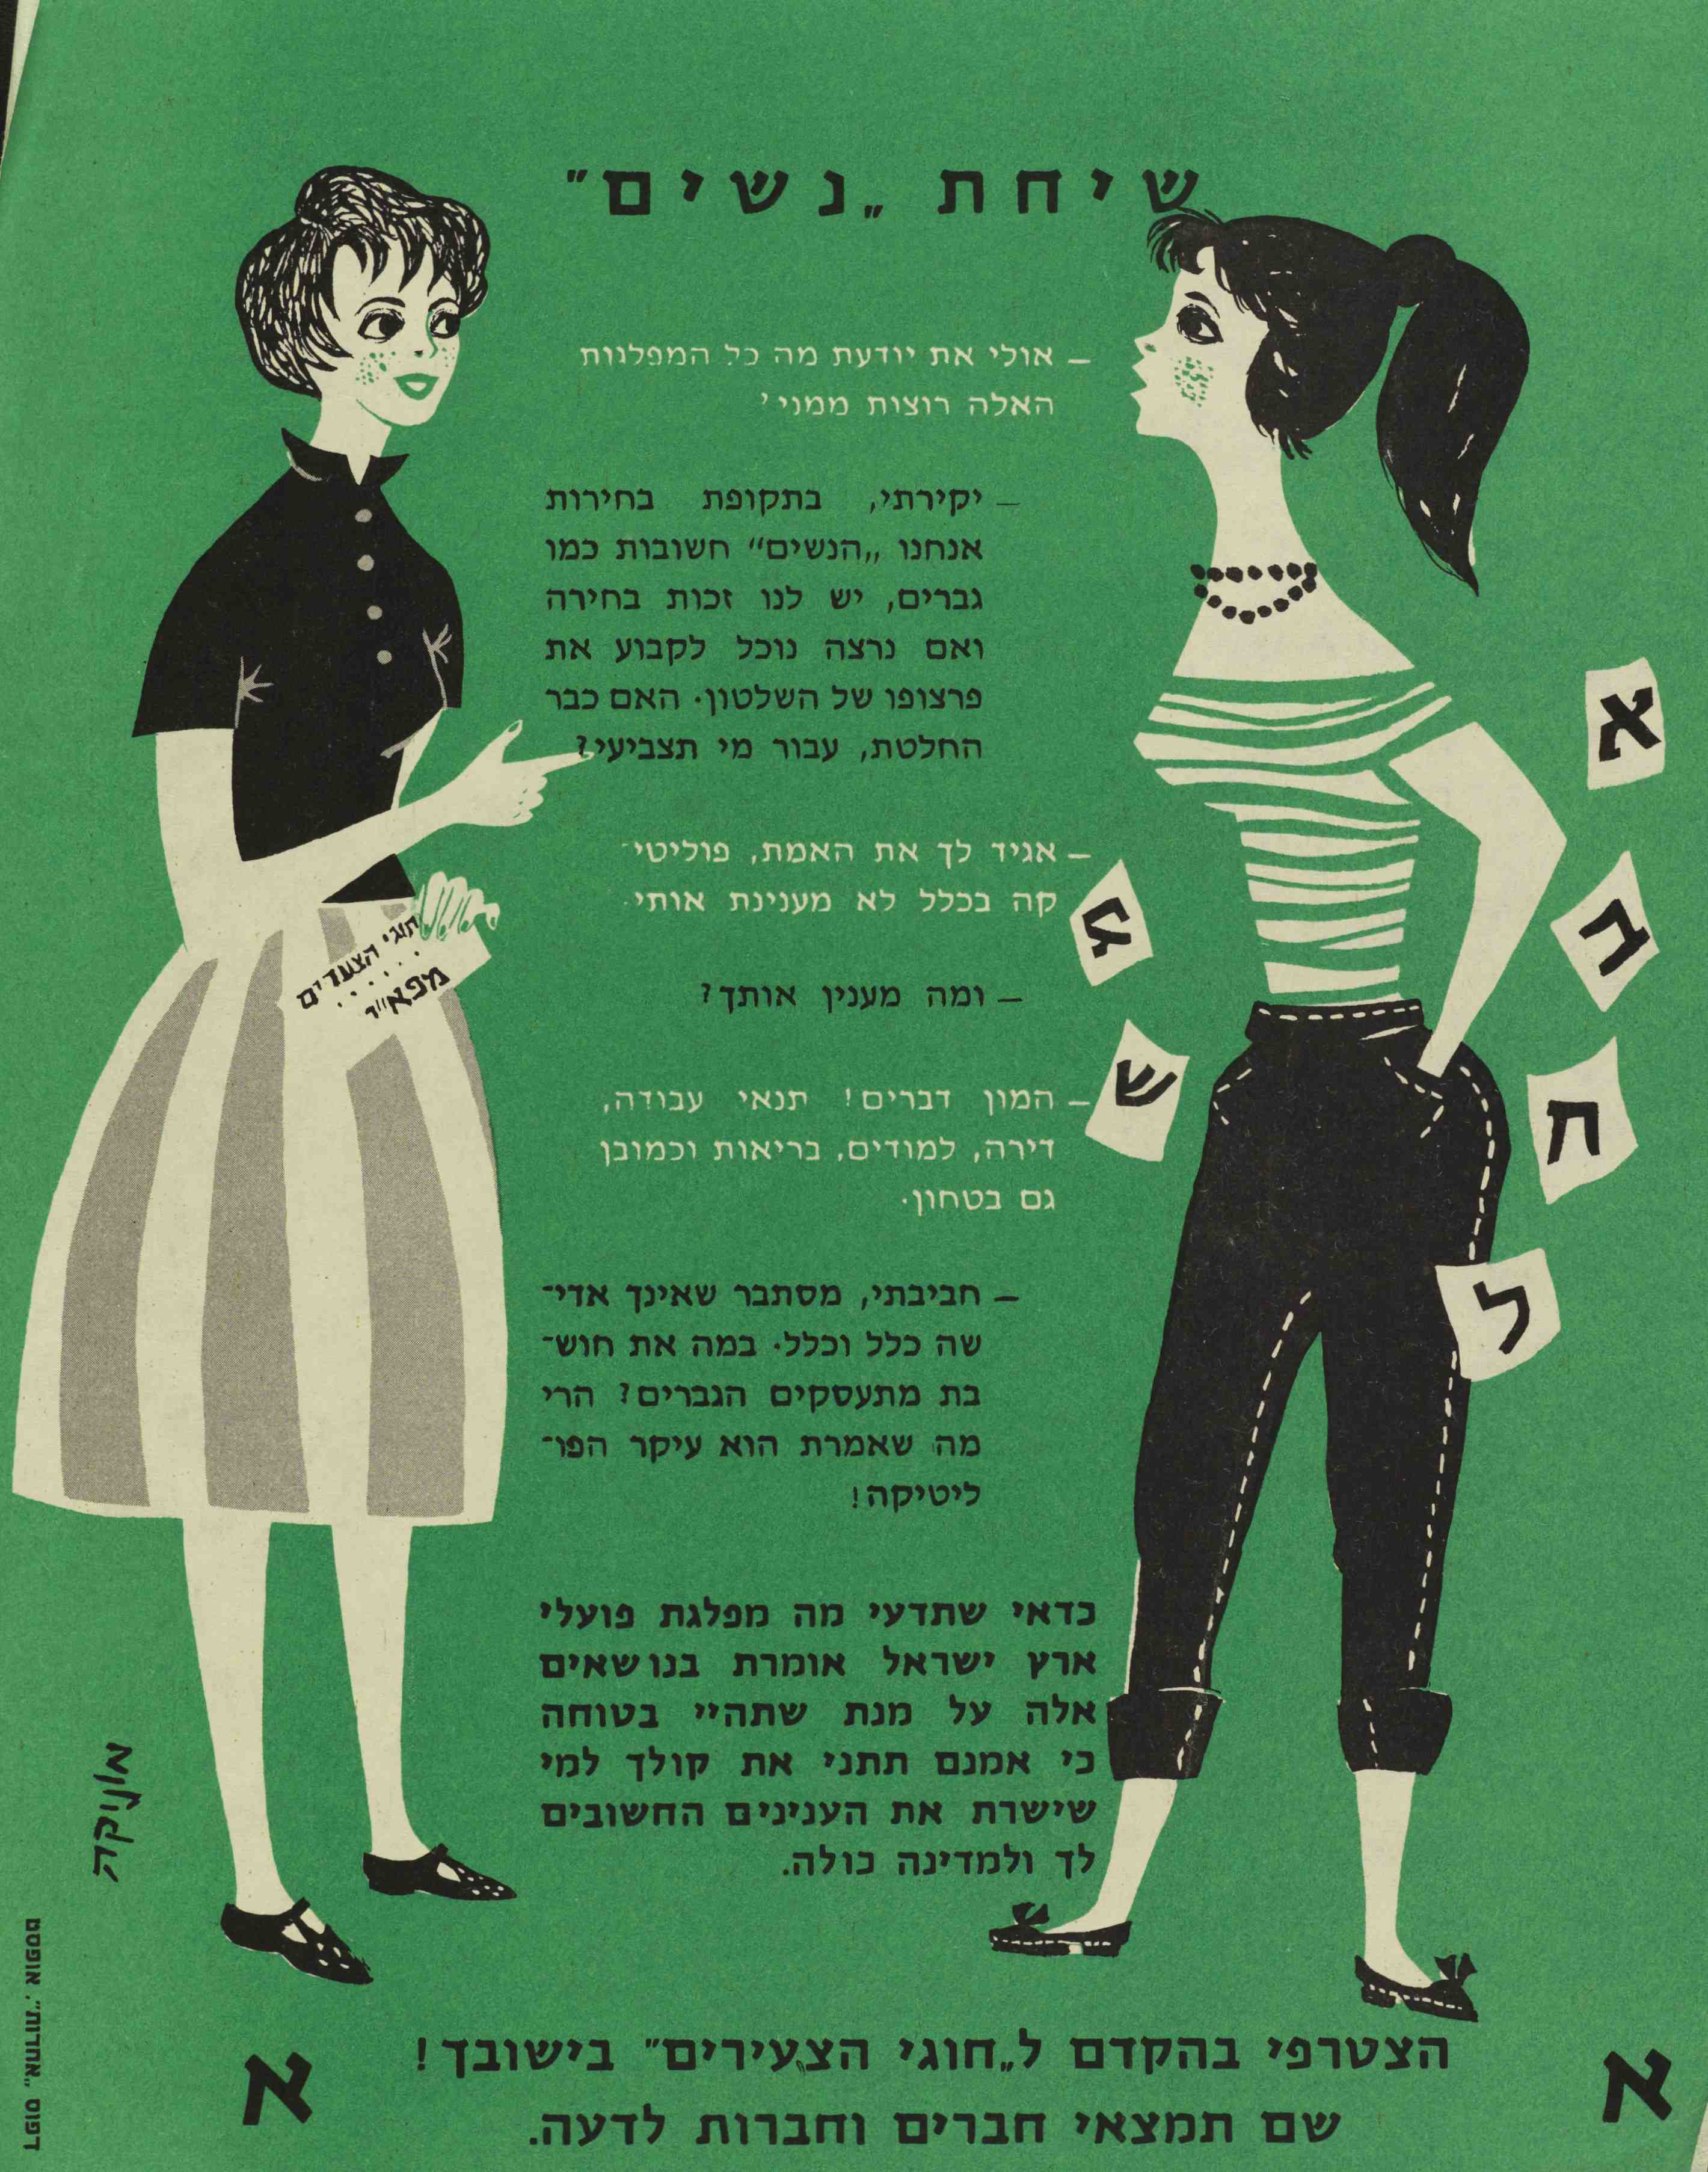 A not-so-nostalgic look at sexual harassment in Israel ... - photo#3